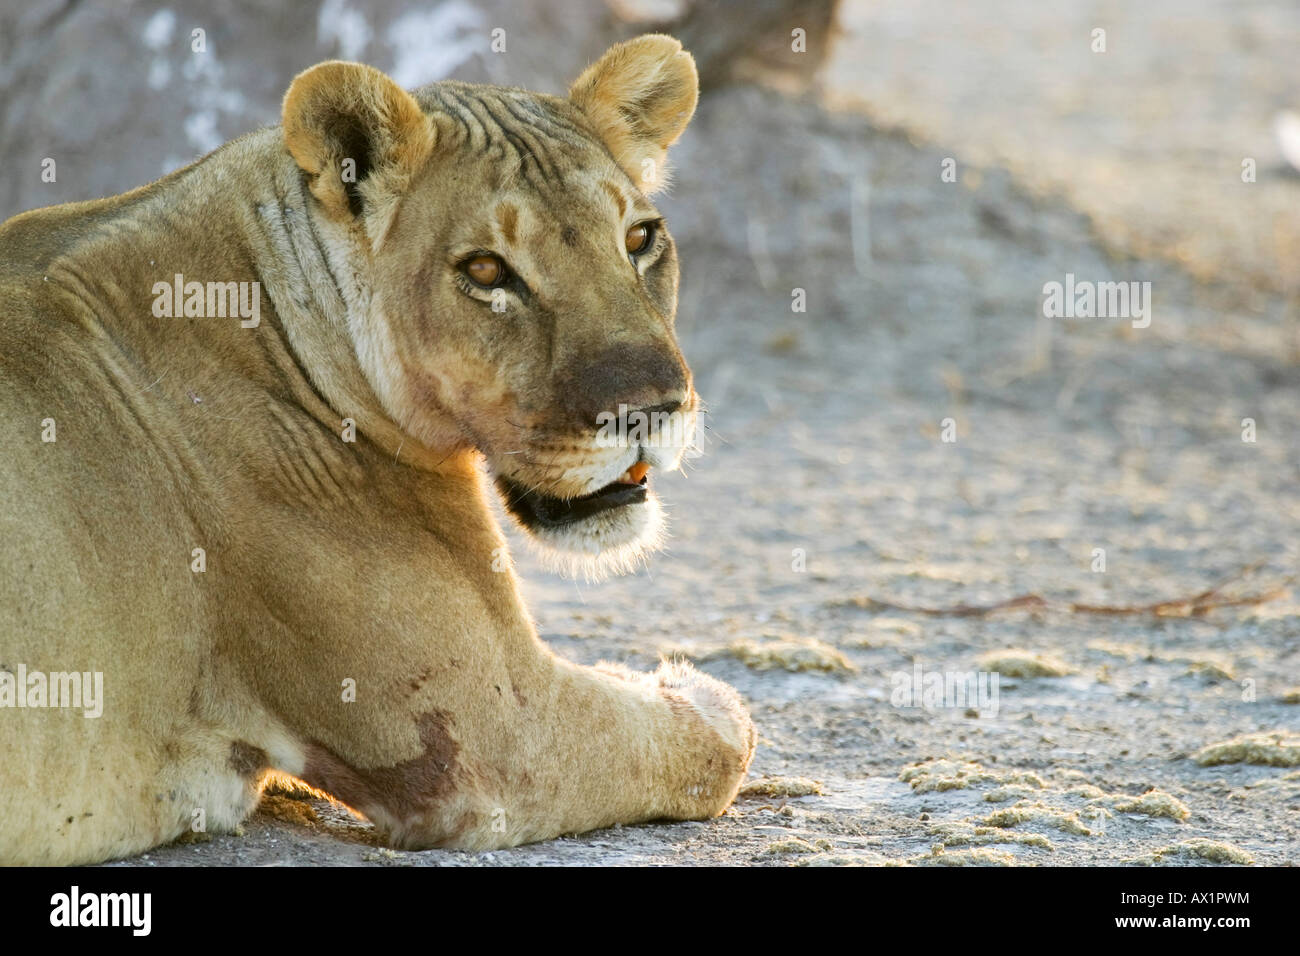 Lioness (Panthera leo) Nxai Pan, Makgadikgadi Pans National Park, Botswana, Africa Stock Photo